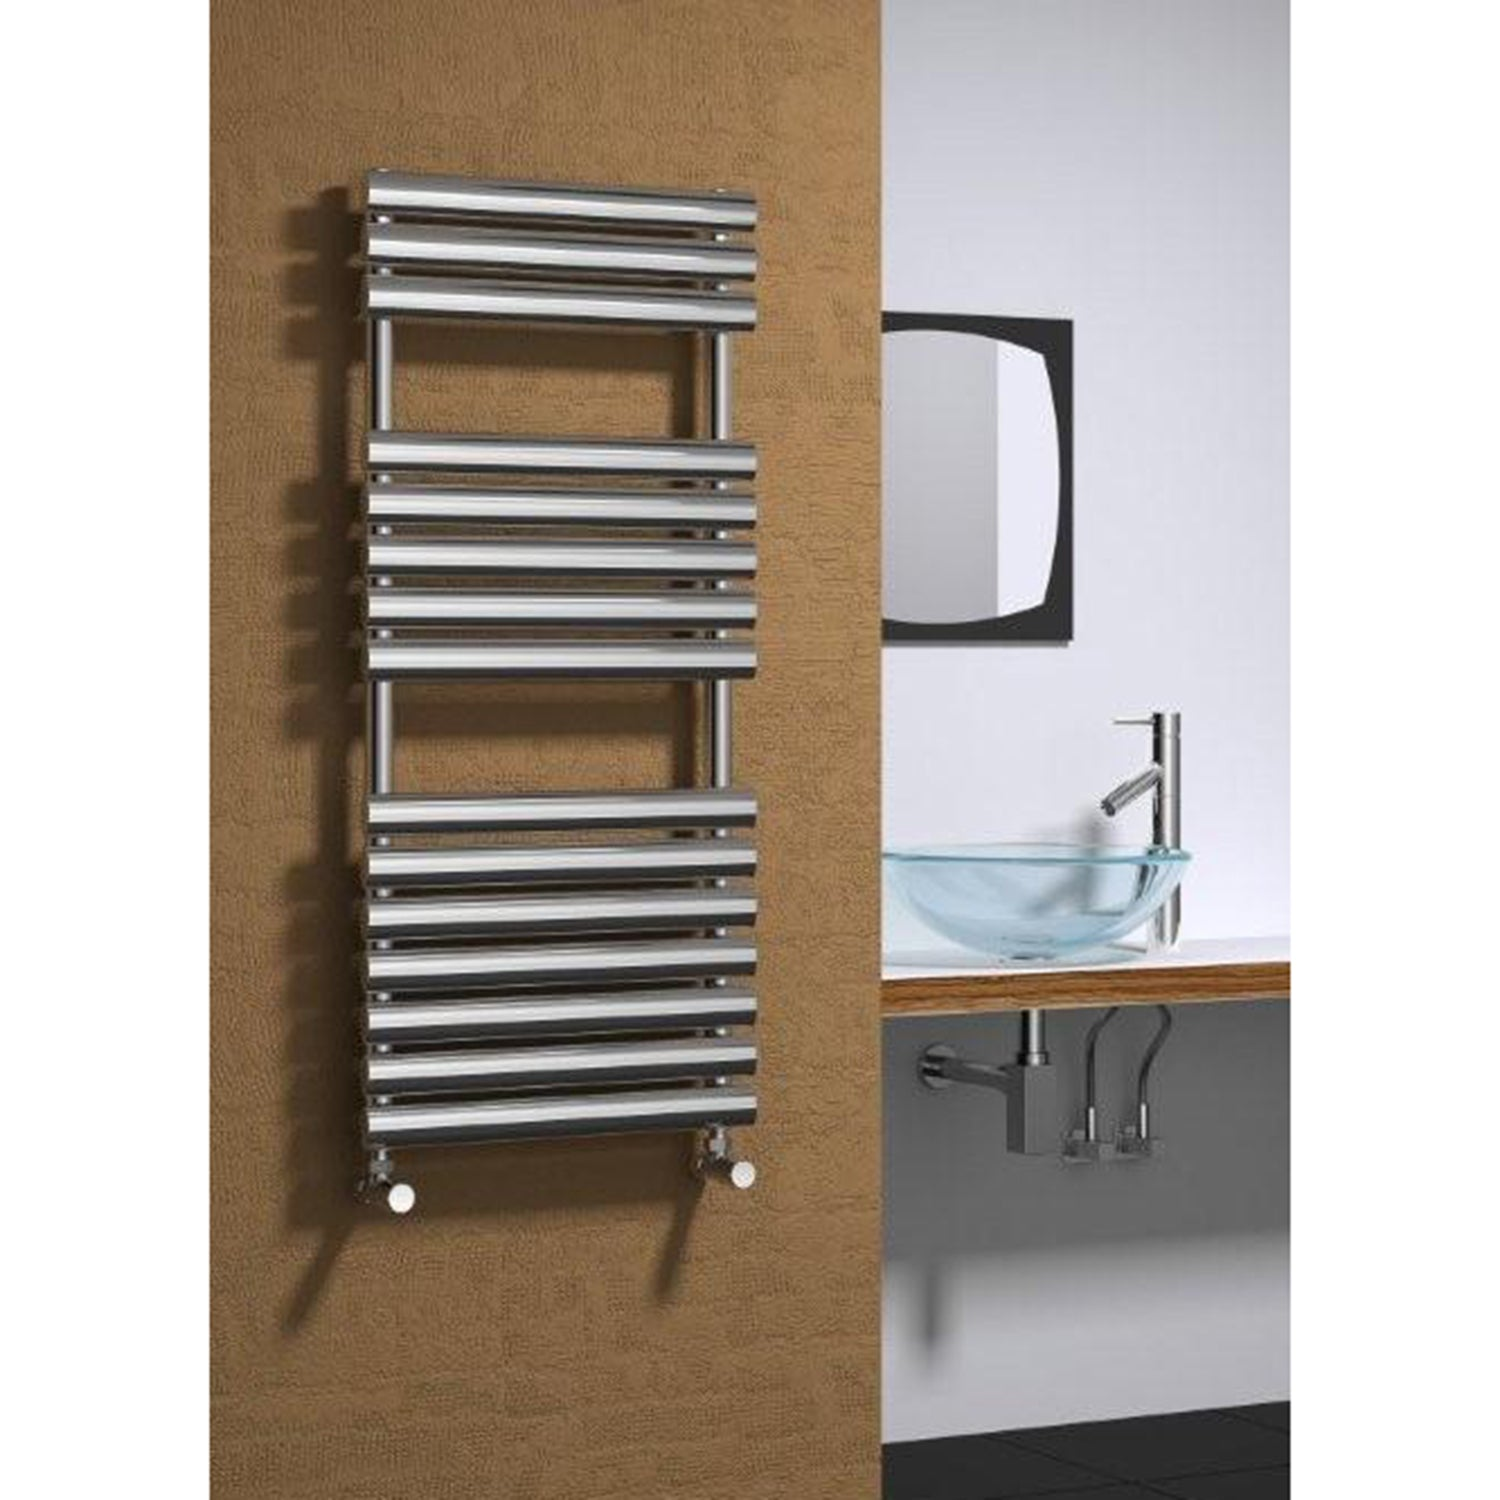 Reina Helin Designer Stainless Steel Towel Radiator